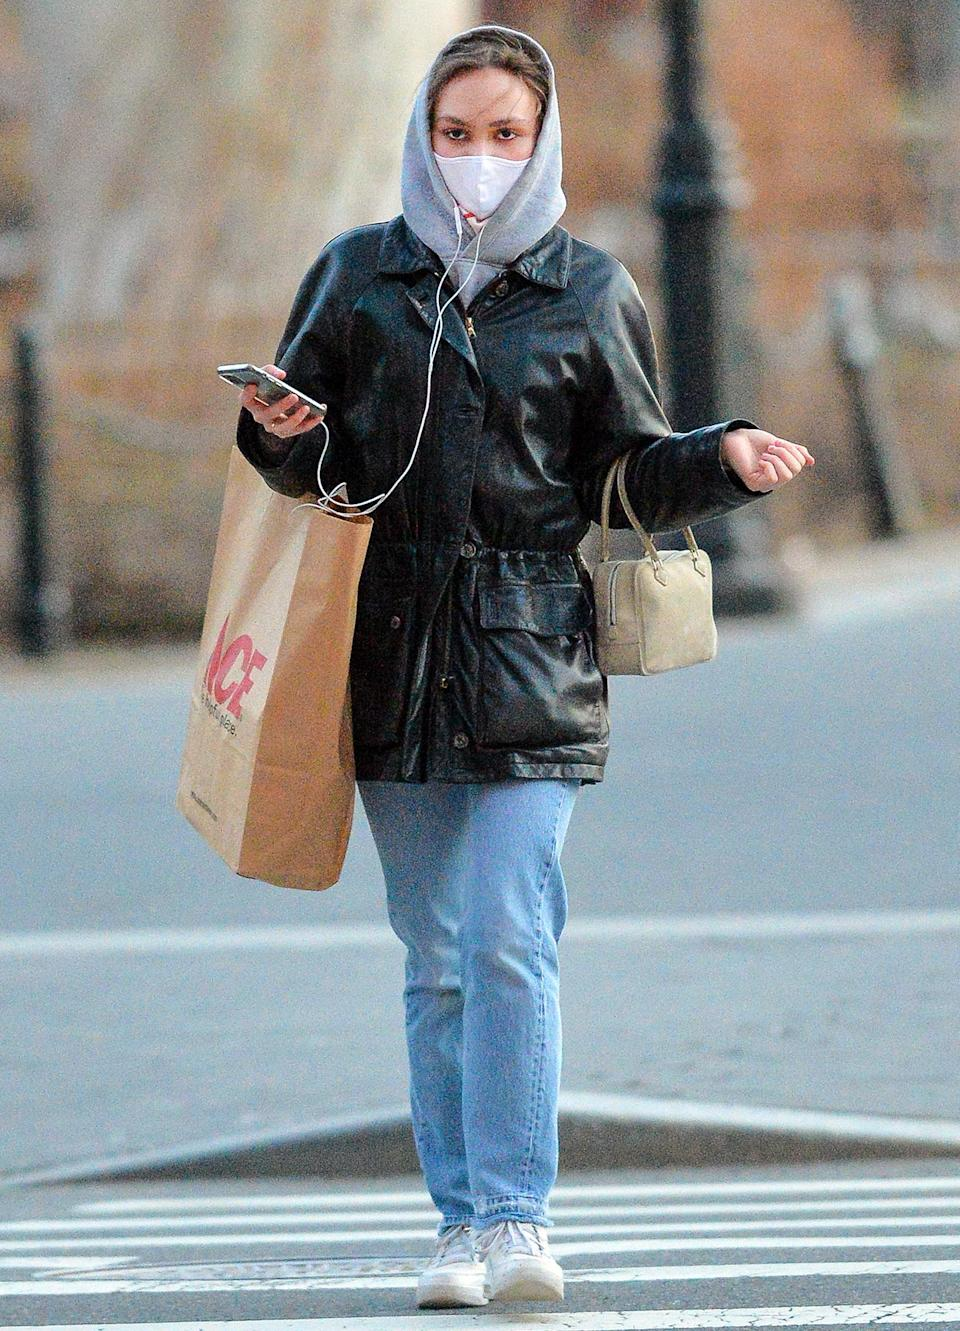 <p>Lily-Rose Depp makes a stop at Ace Hardware in N.Y.C. on Wednesday, wearing a hoodie under a leather jacket, jeans and white sneakers.</p>